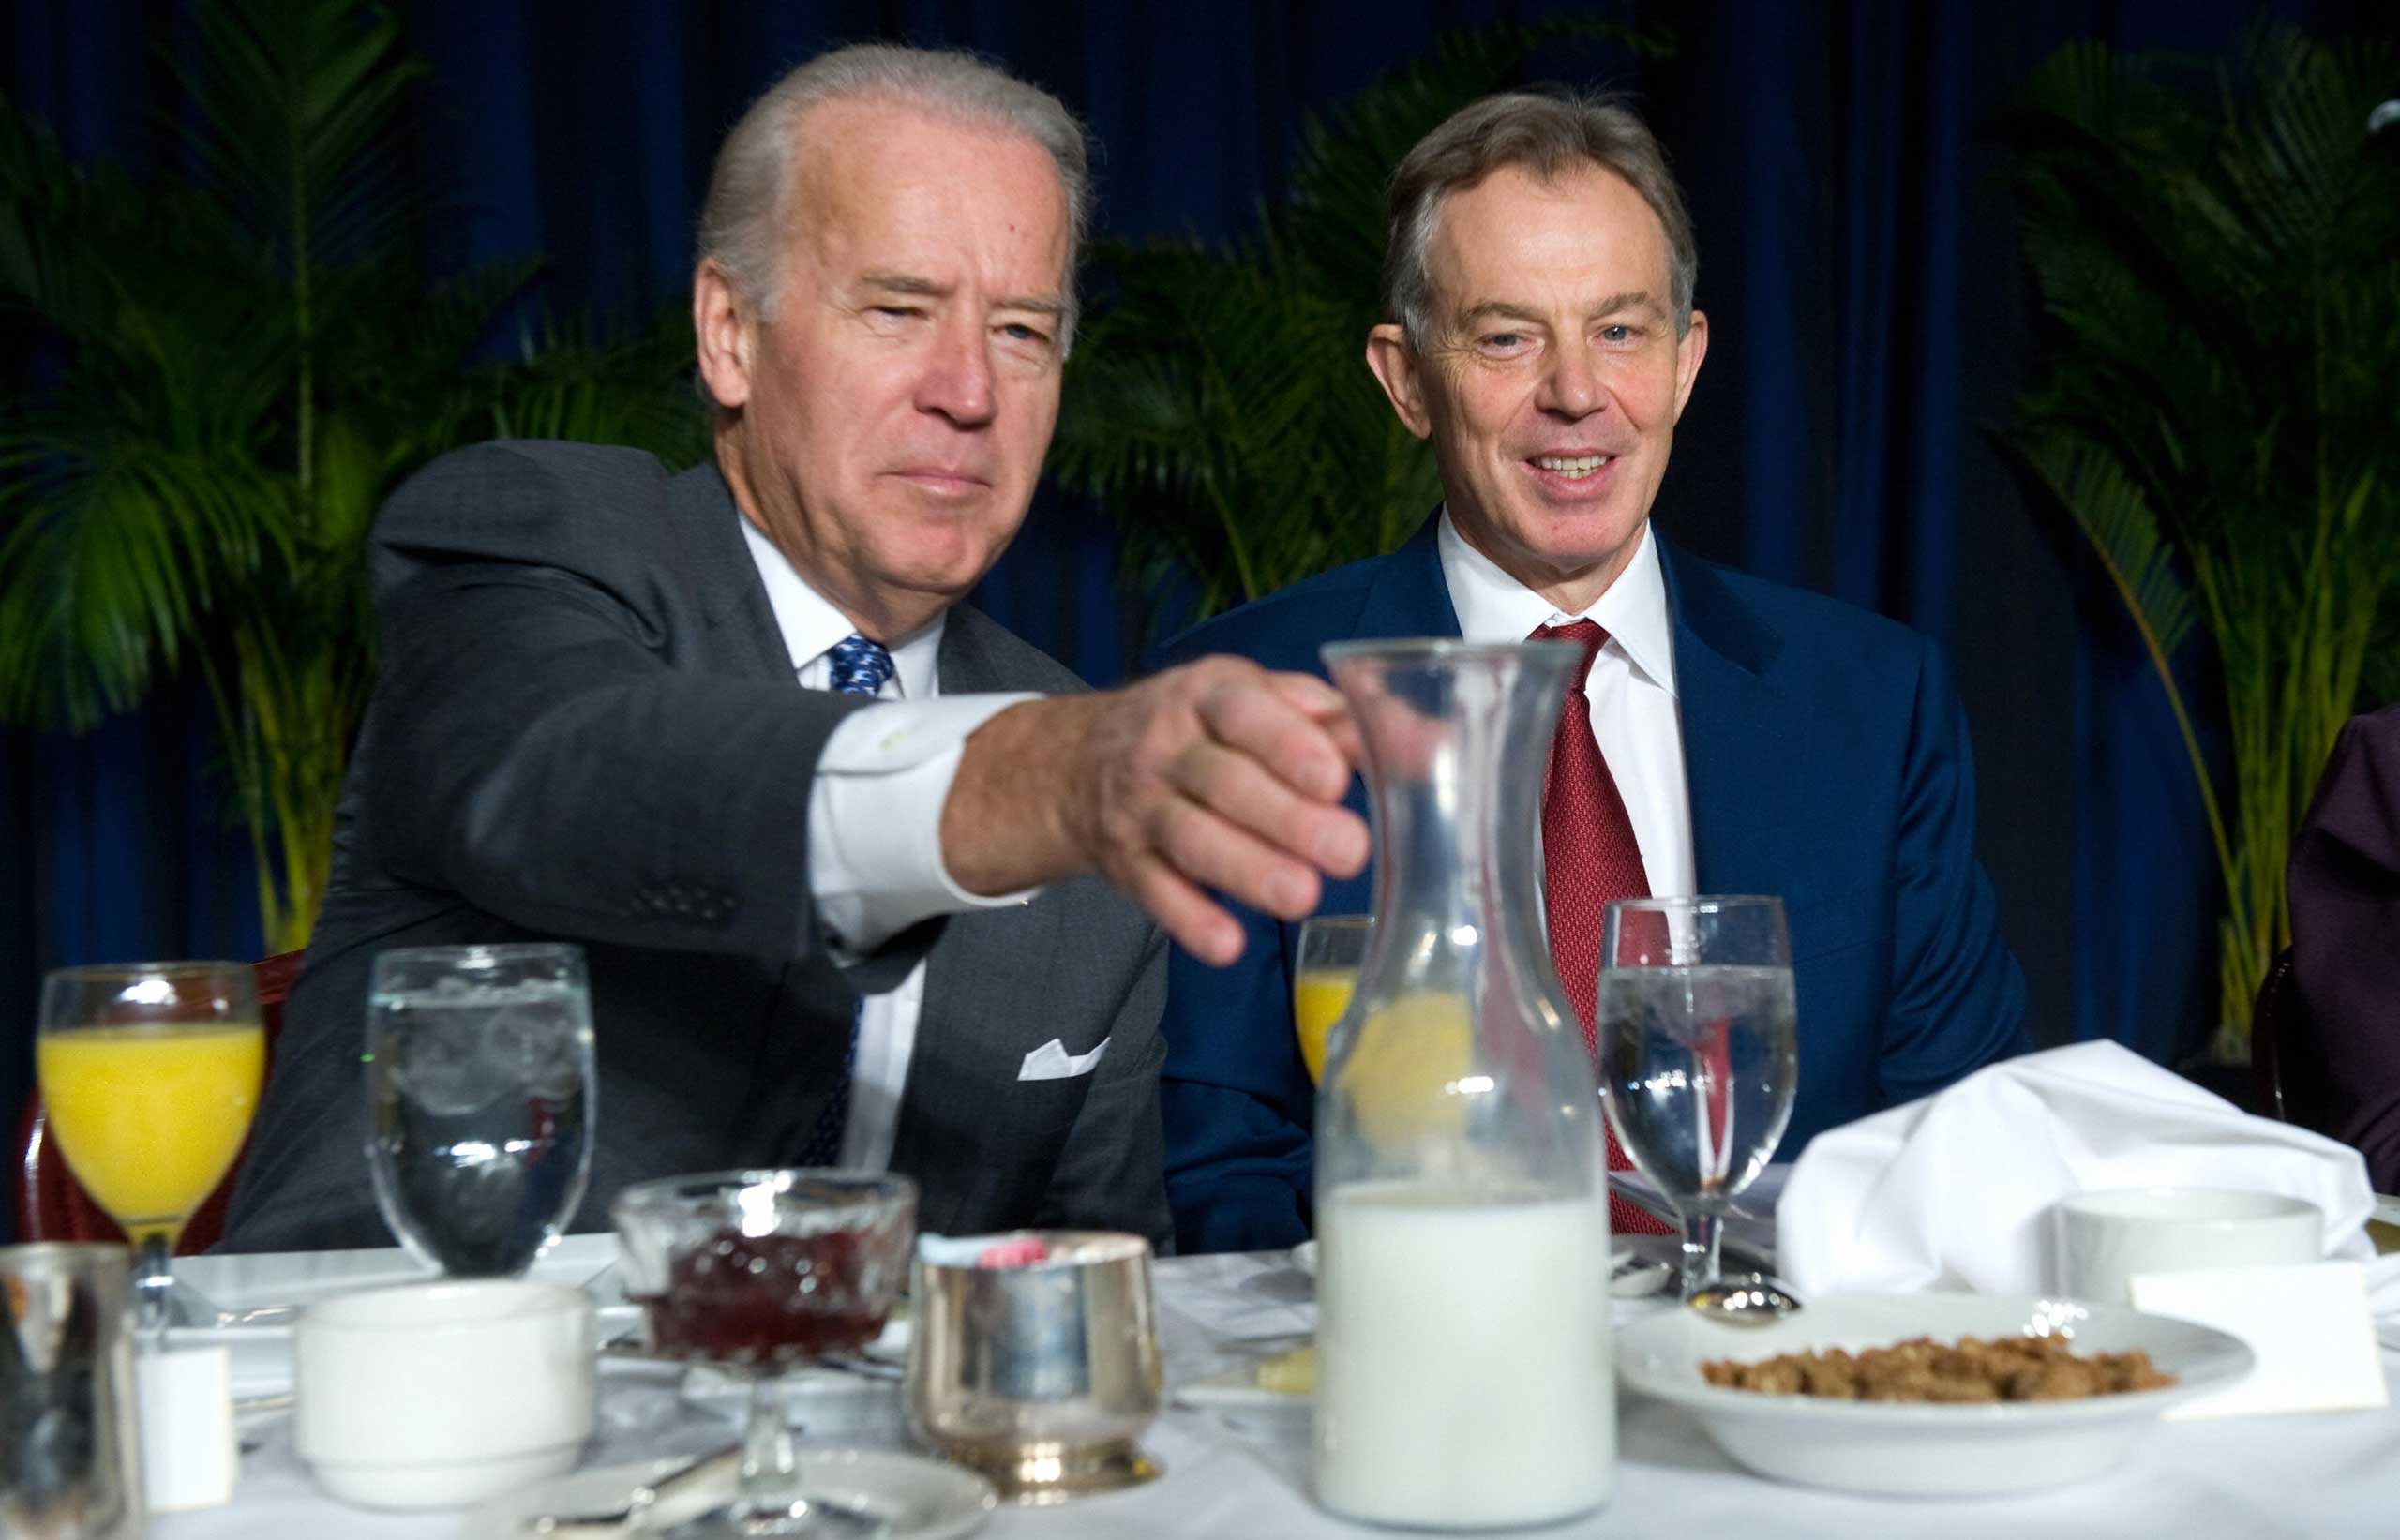 Vice President Joe Biden reaches for milk while sitting next to former Prime Minister Tony Blair at the 2009 National Prayer Breakfast.